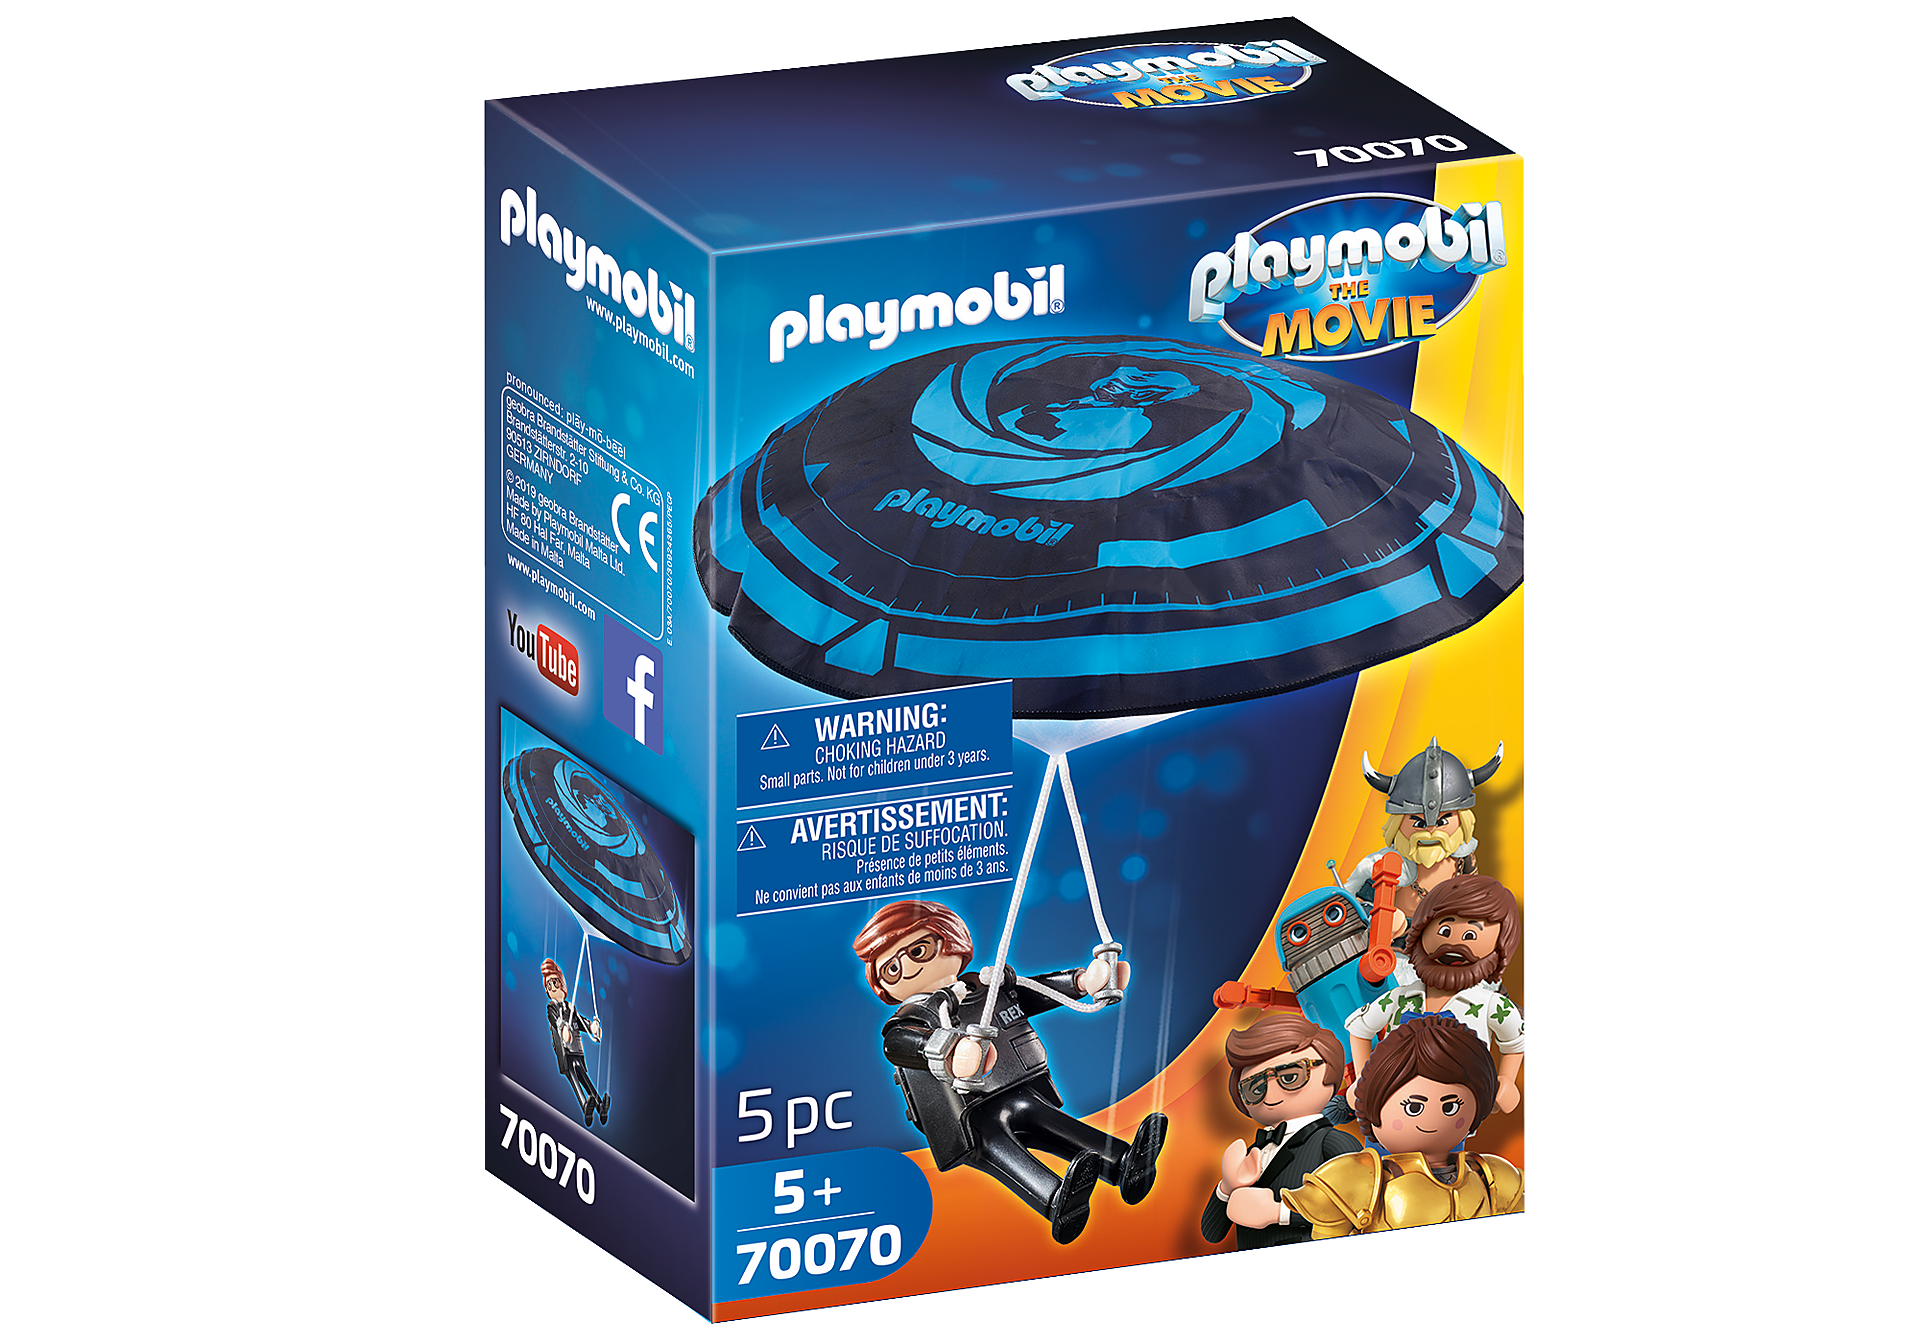 http://media.playmobil.com/i/playmobil/70070_product_box_front/PLAYMOBIL: THE MOVIE Rex Dasher avec parachute